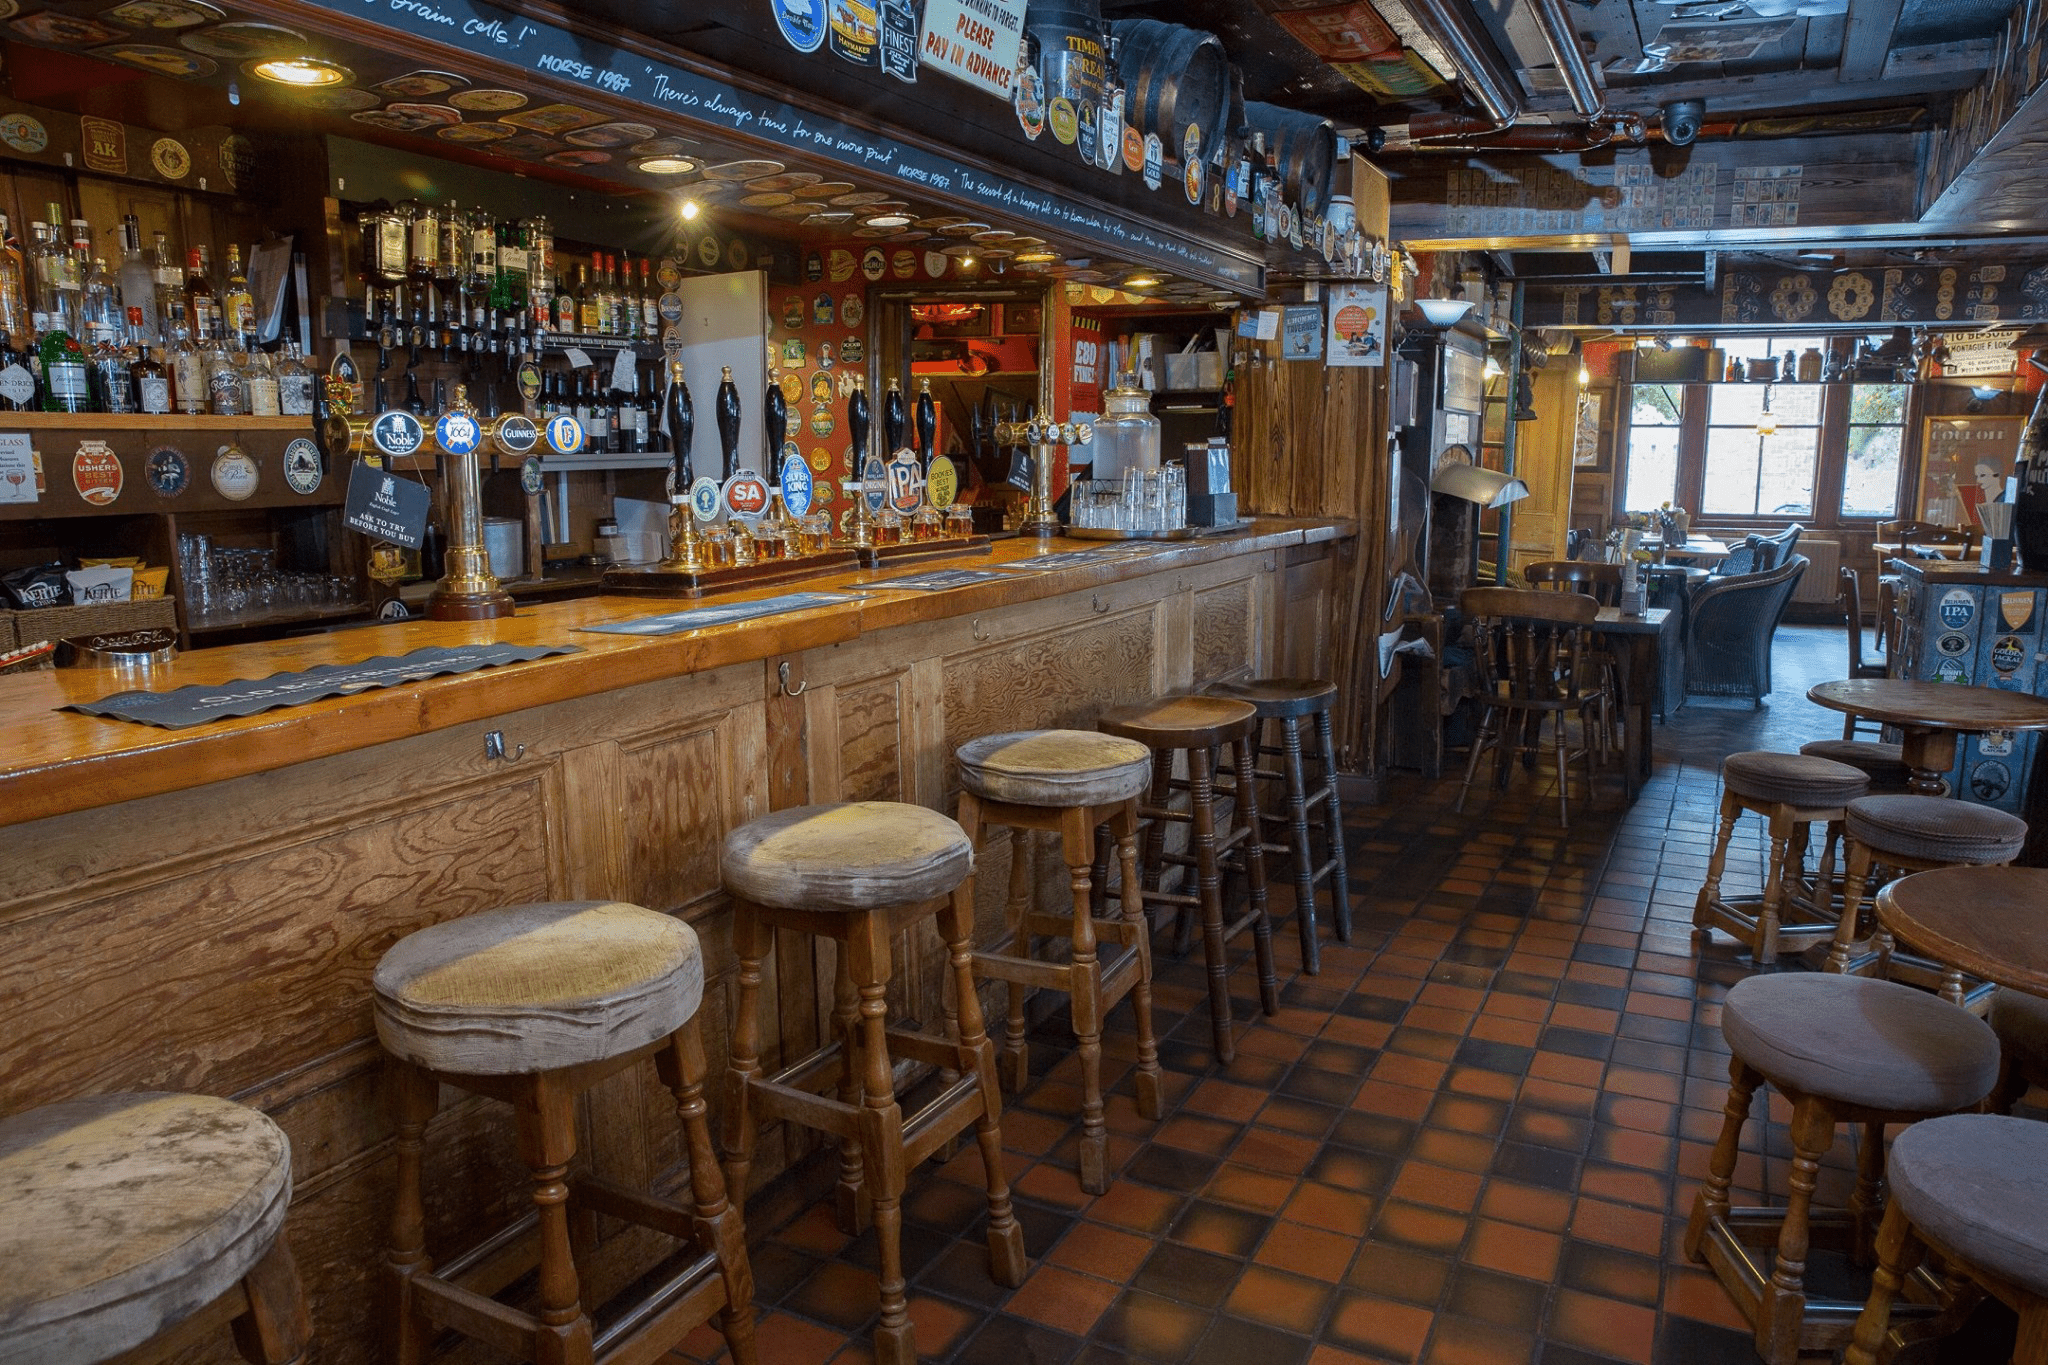 Inside the Old Bookbinders Ale House